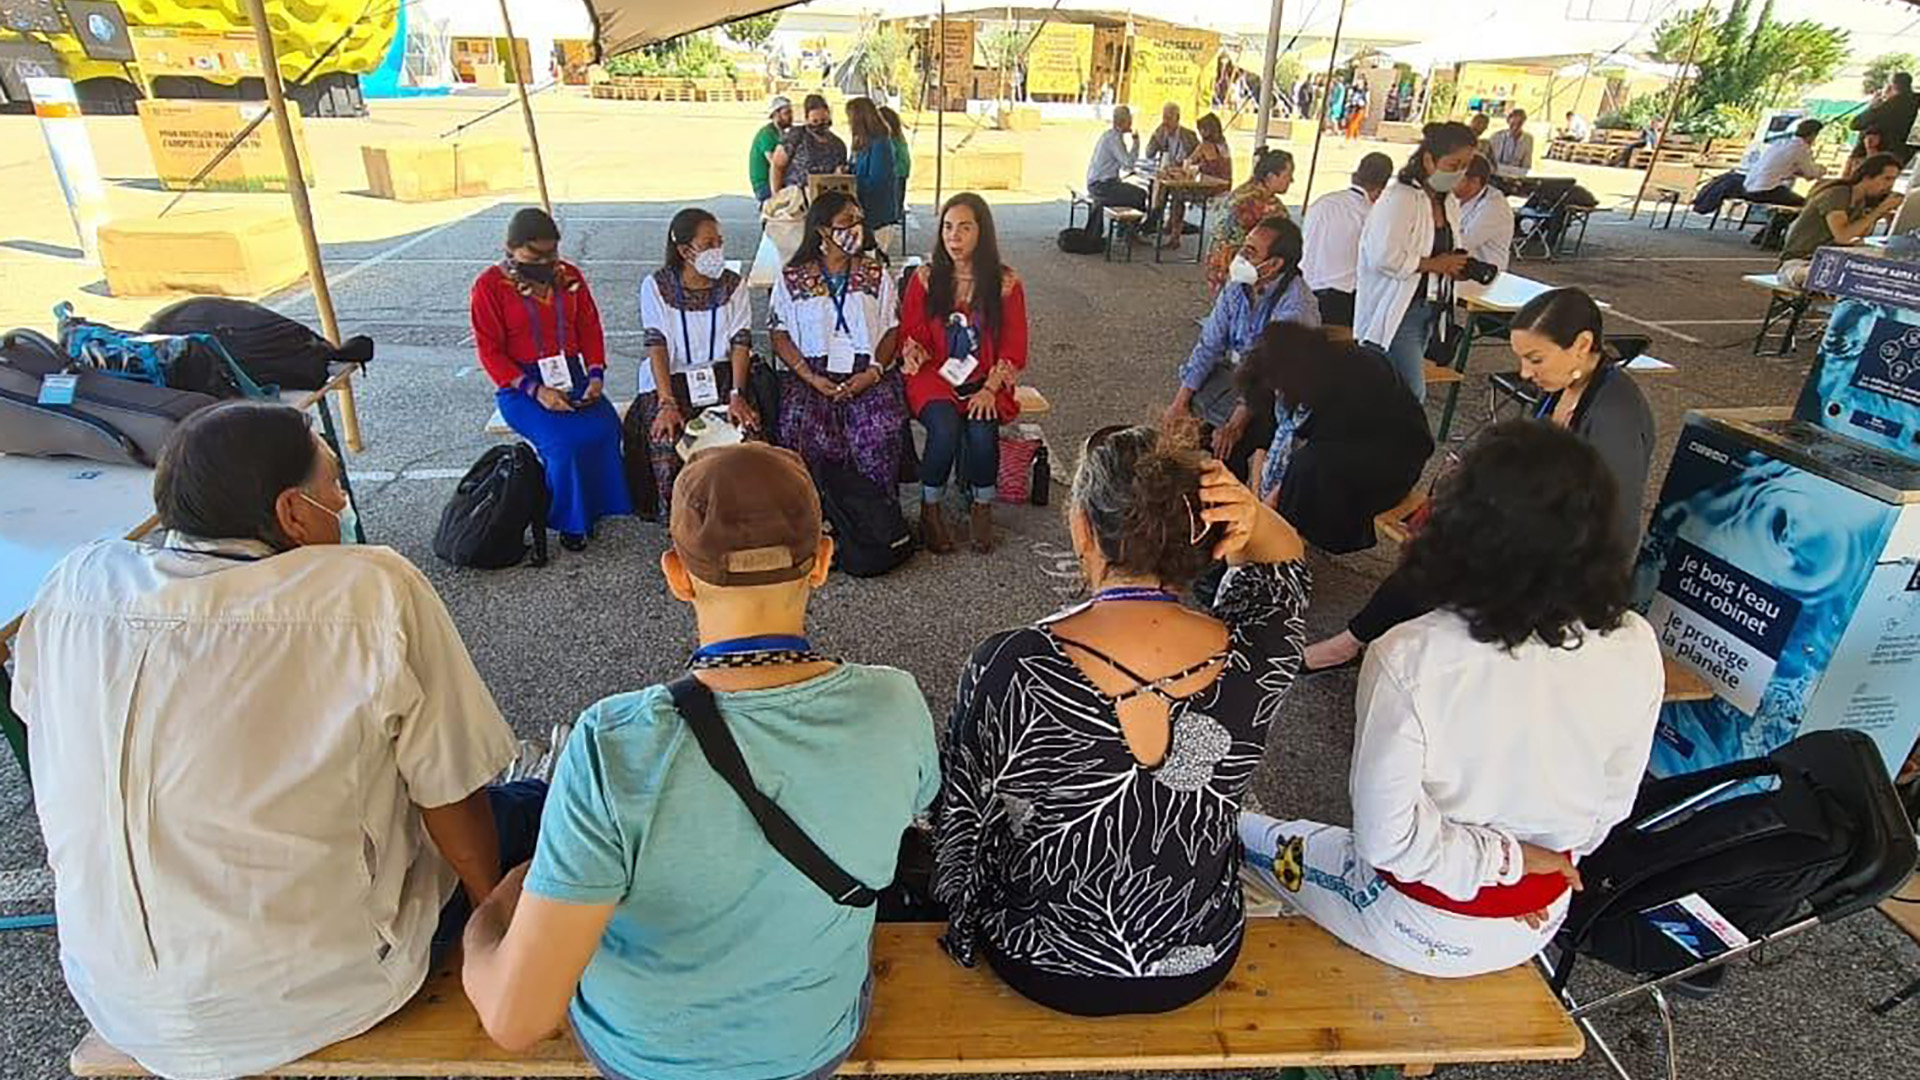 World Conservation Congress: Indigenous Peoples and local communities advocate for rights